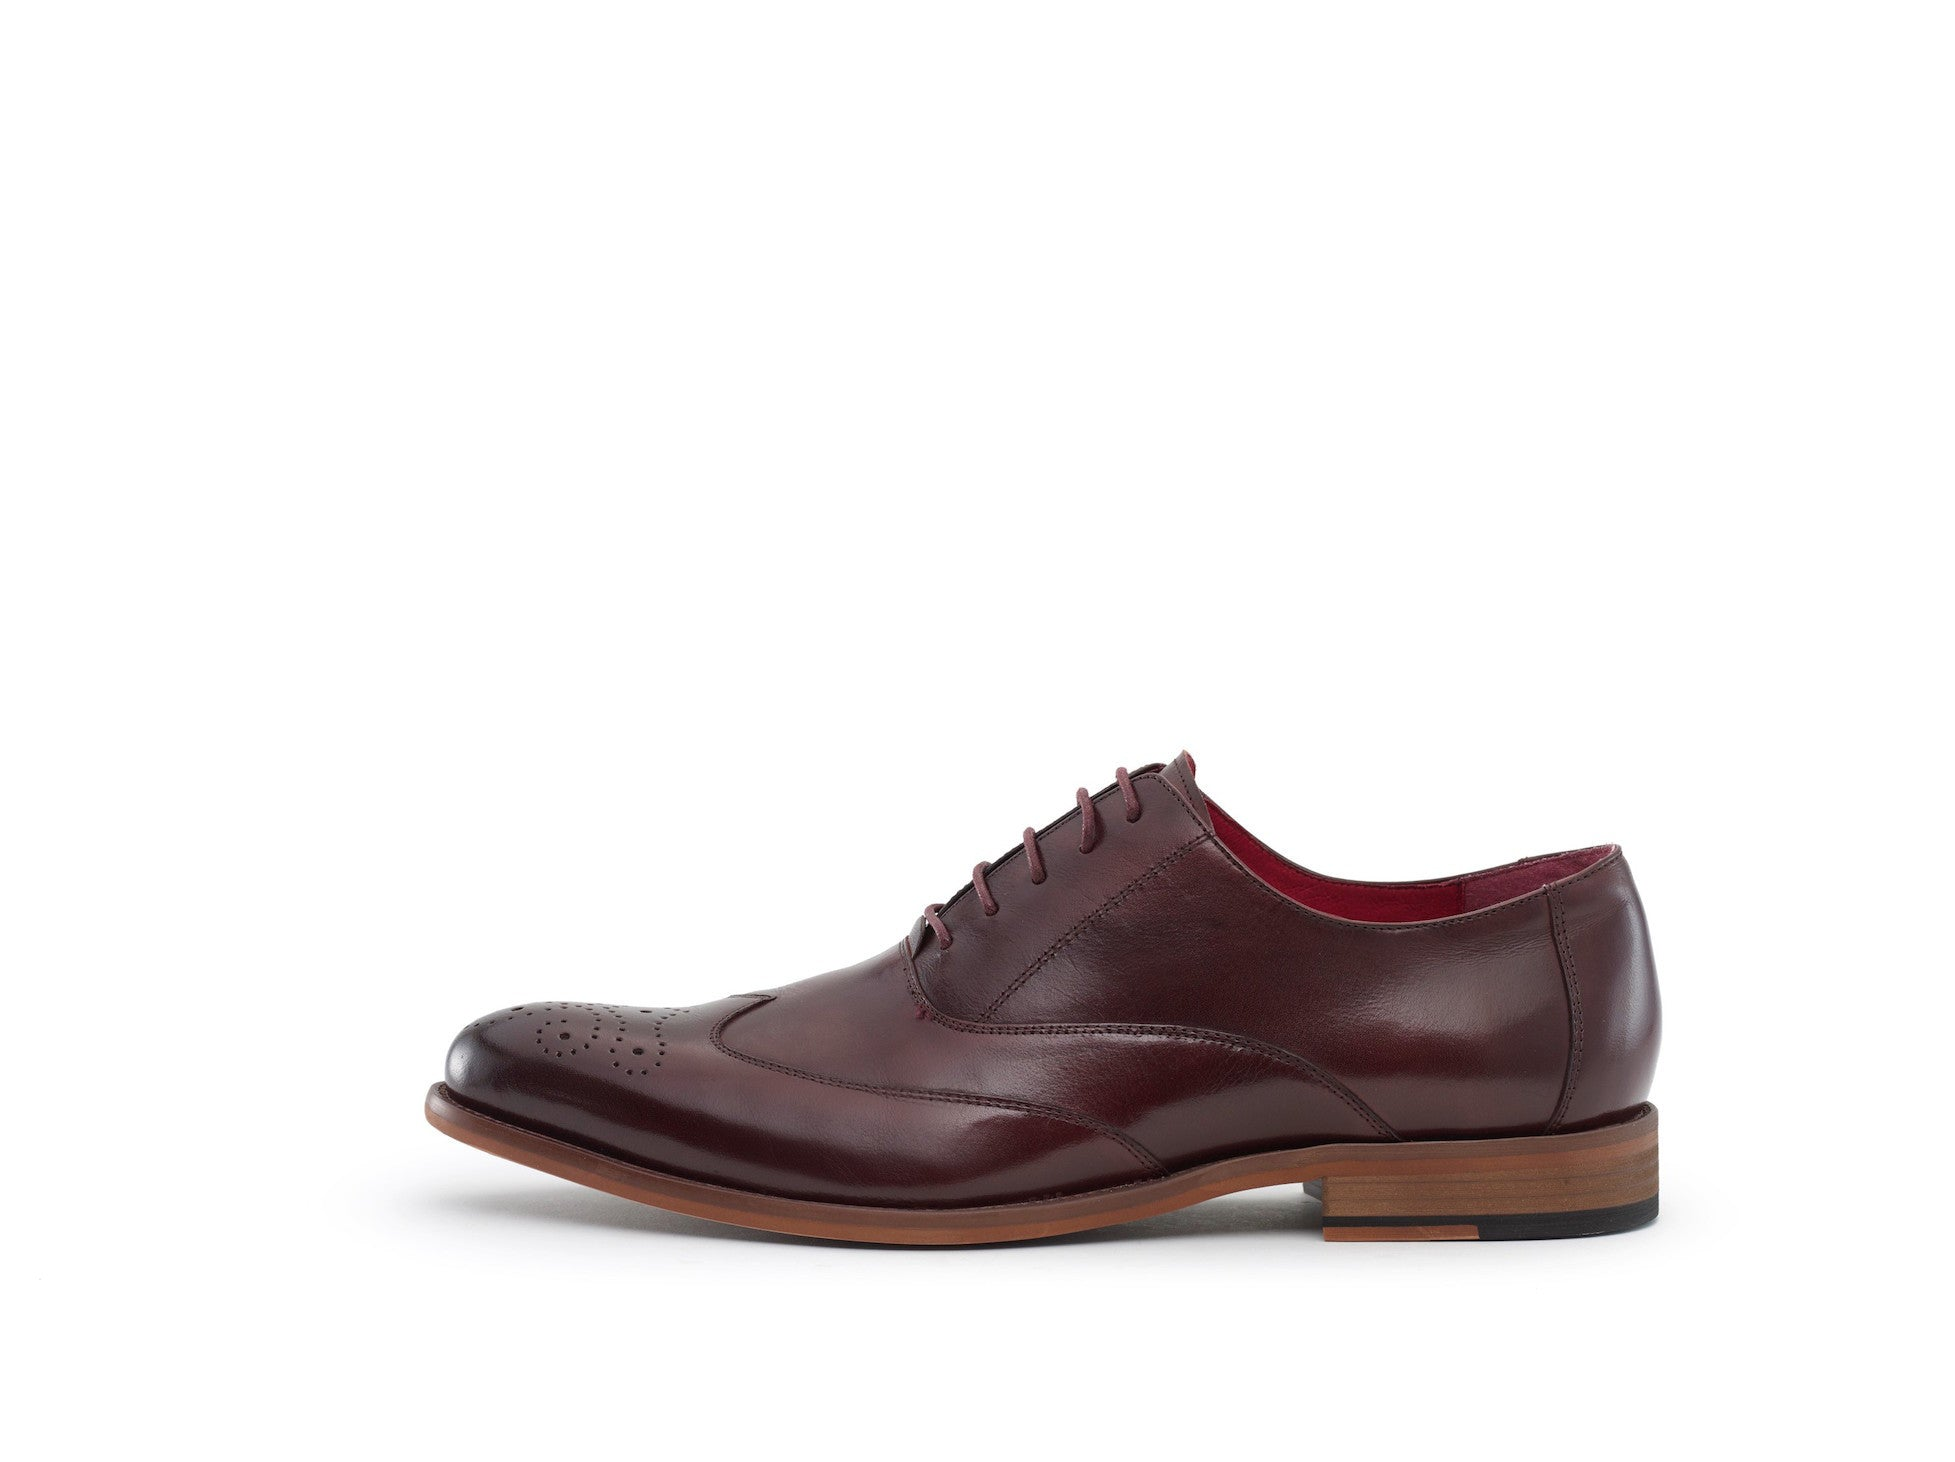 The Verrocchio Dress Shoe in Burgundy